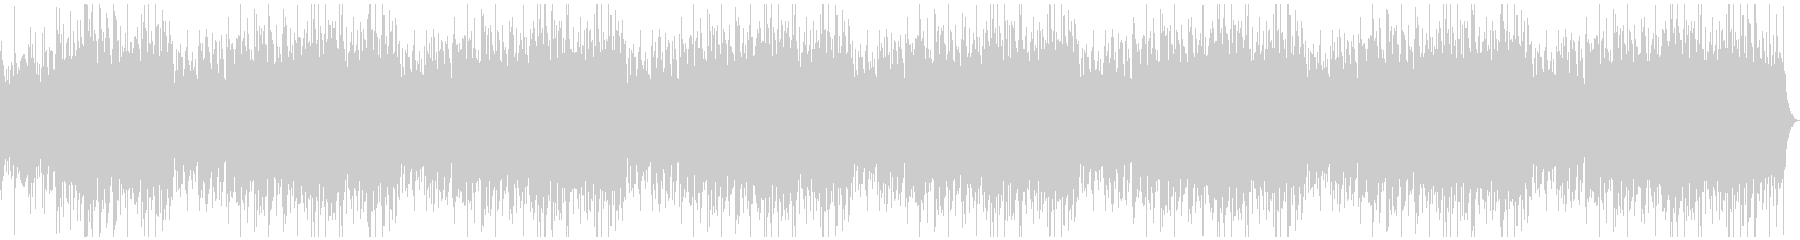 Quiet, serious, commentary, ambi, 10 minutes's unreproduced waveform